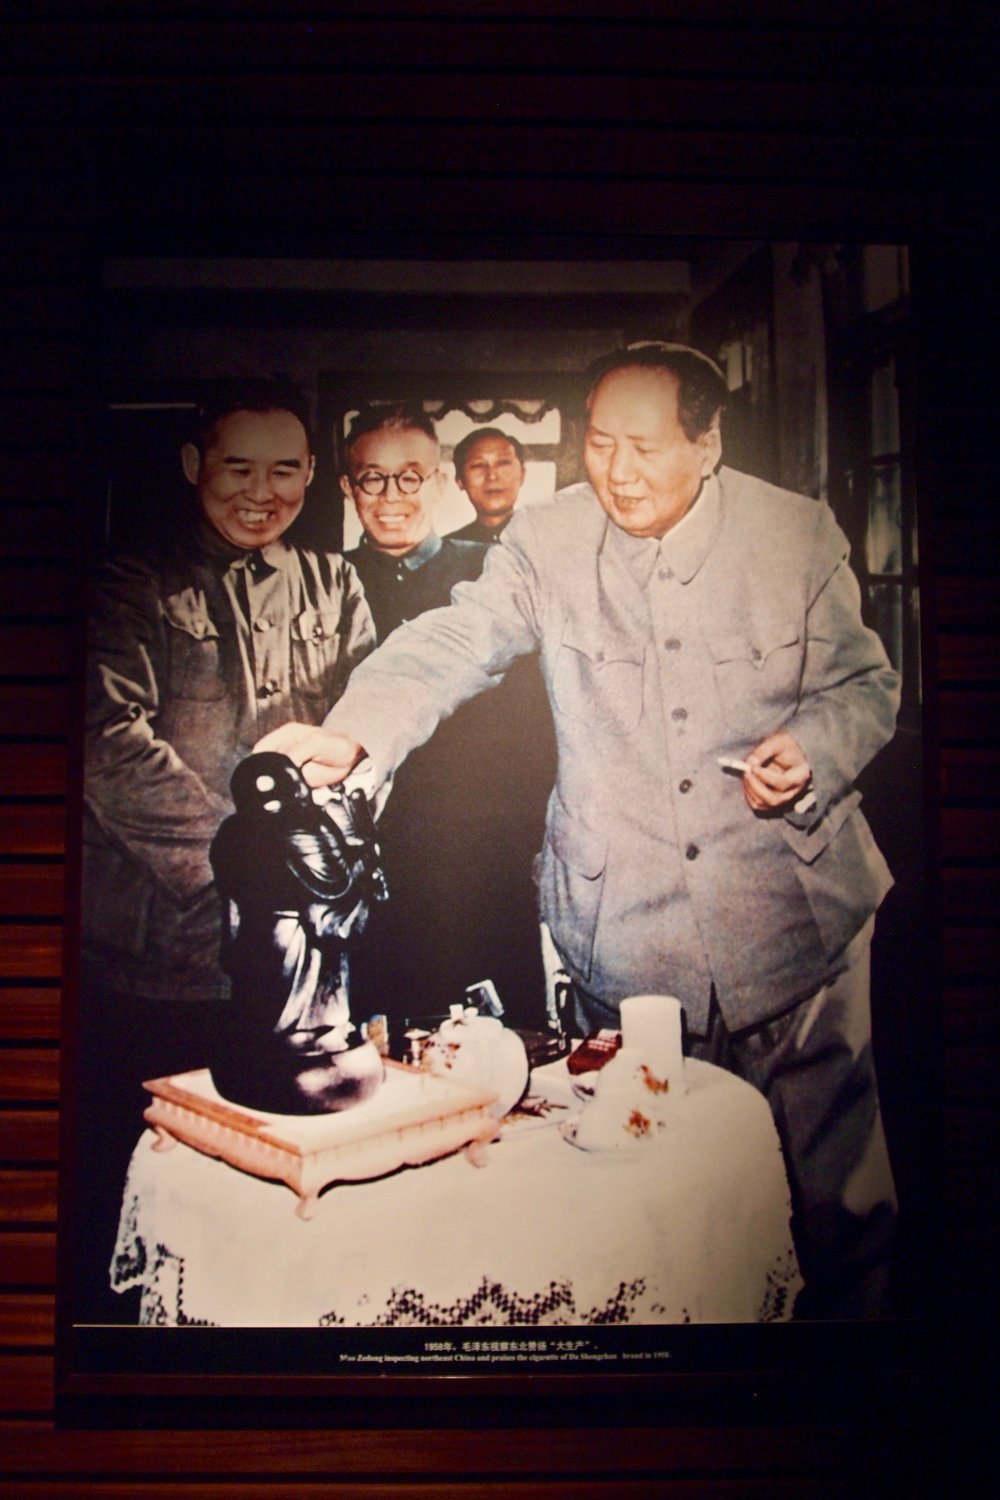 Photo of Mao Zedong as a smoker in the China Tobacco Museum.